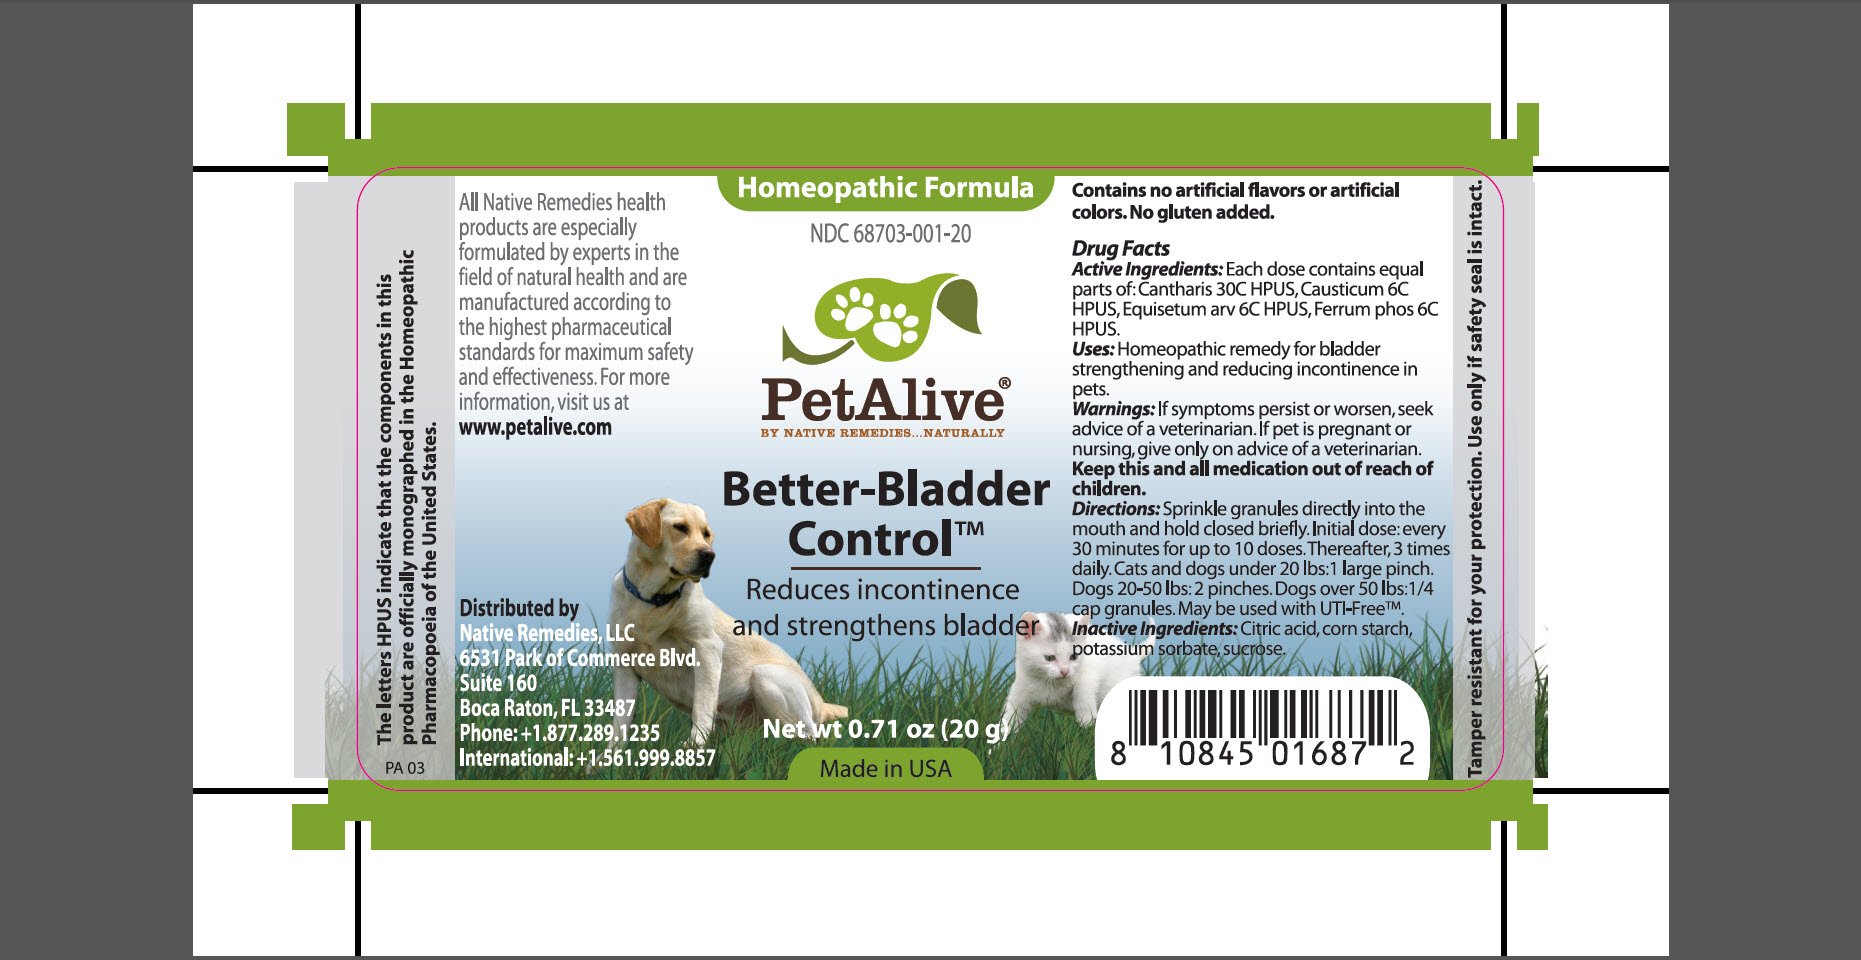 Better-bladder Control (Cantharis, Causticum, Equisetum Arv, Ferrum Phos) Granule [Native Remedies, Llc]